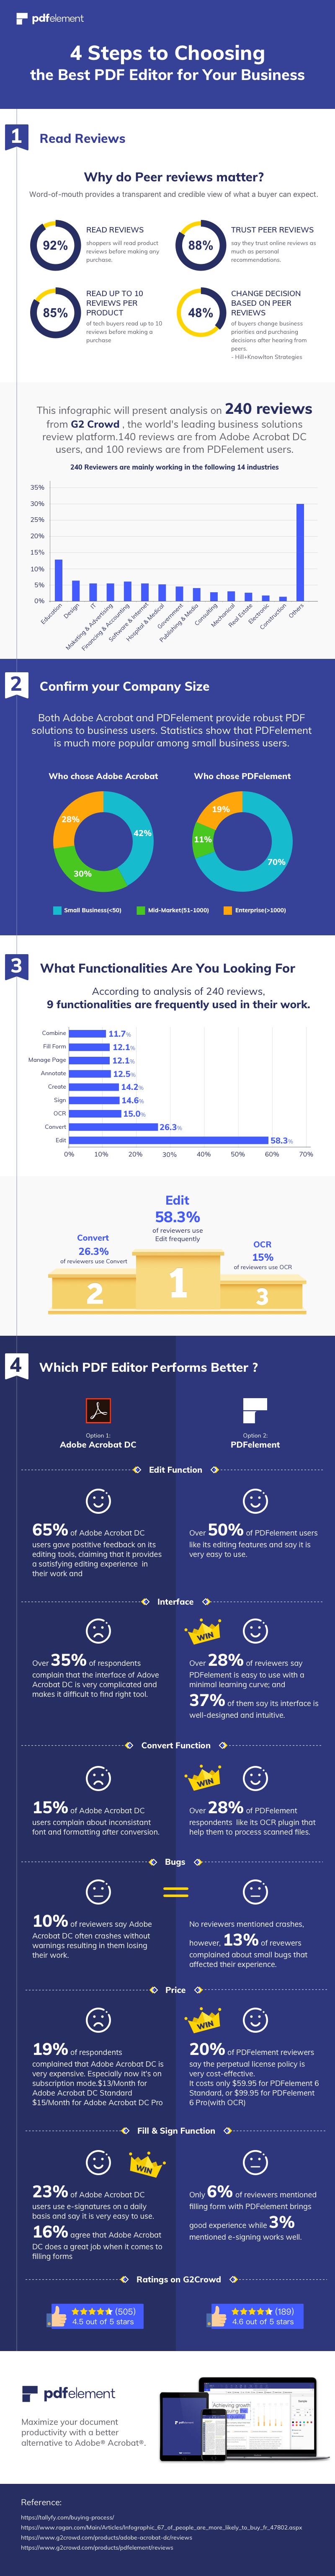 4 Steps to Choose Best PDF Editor